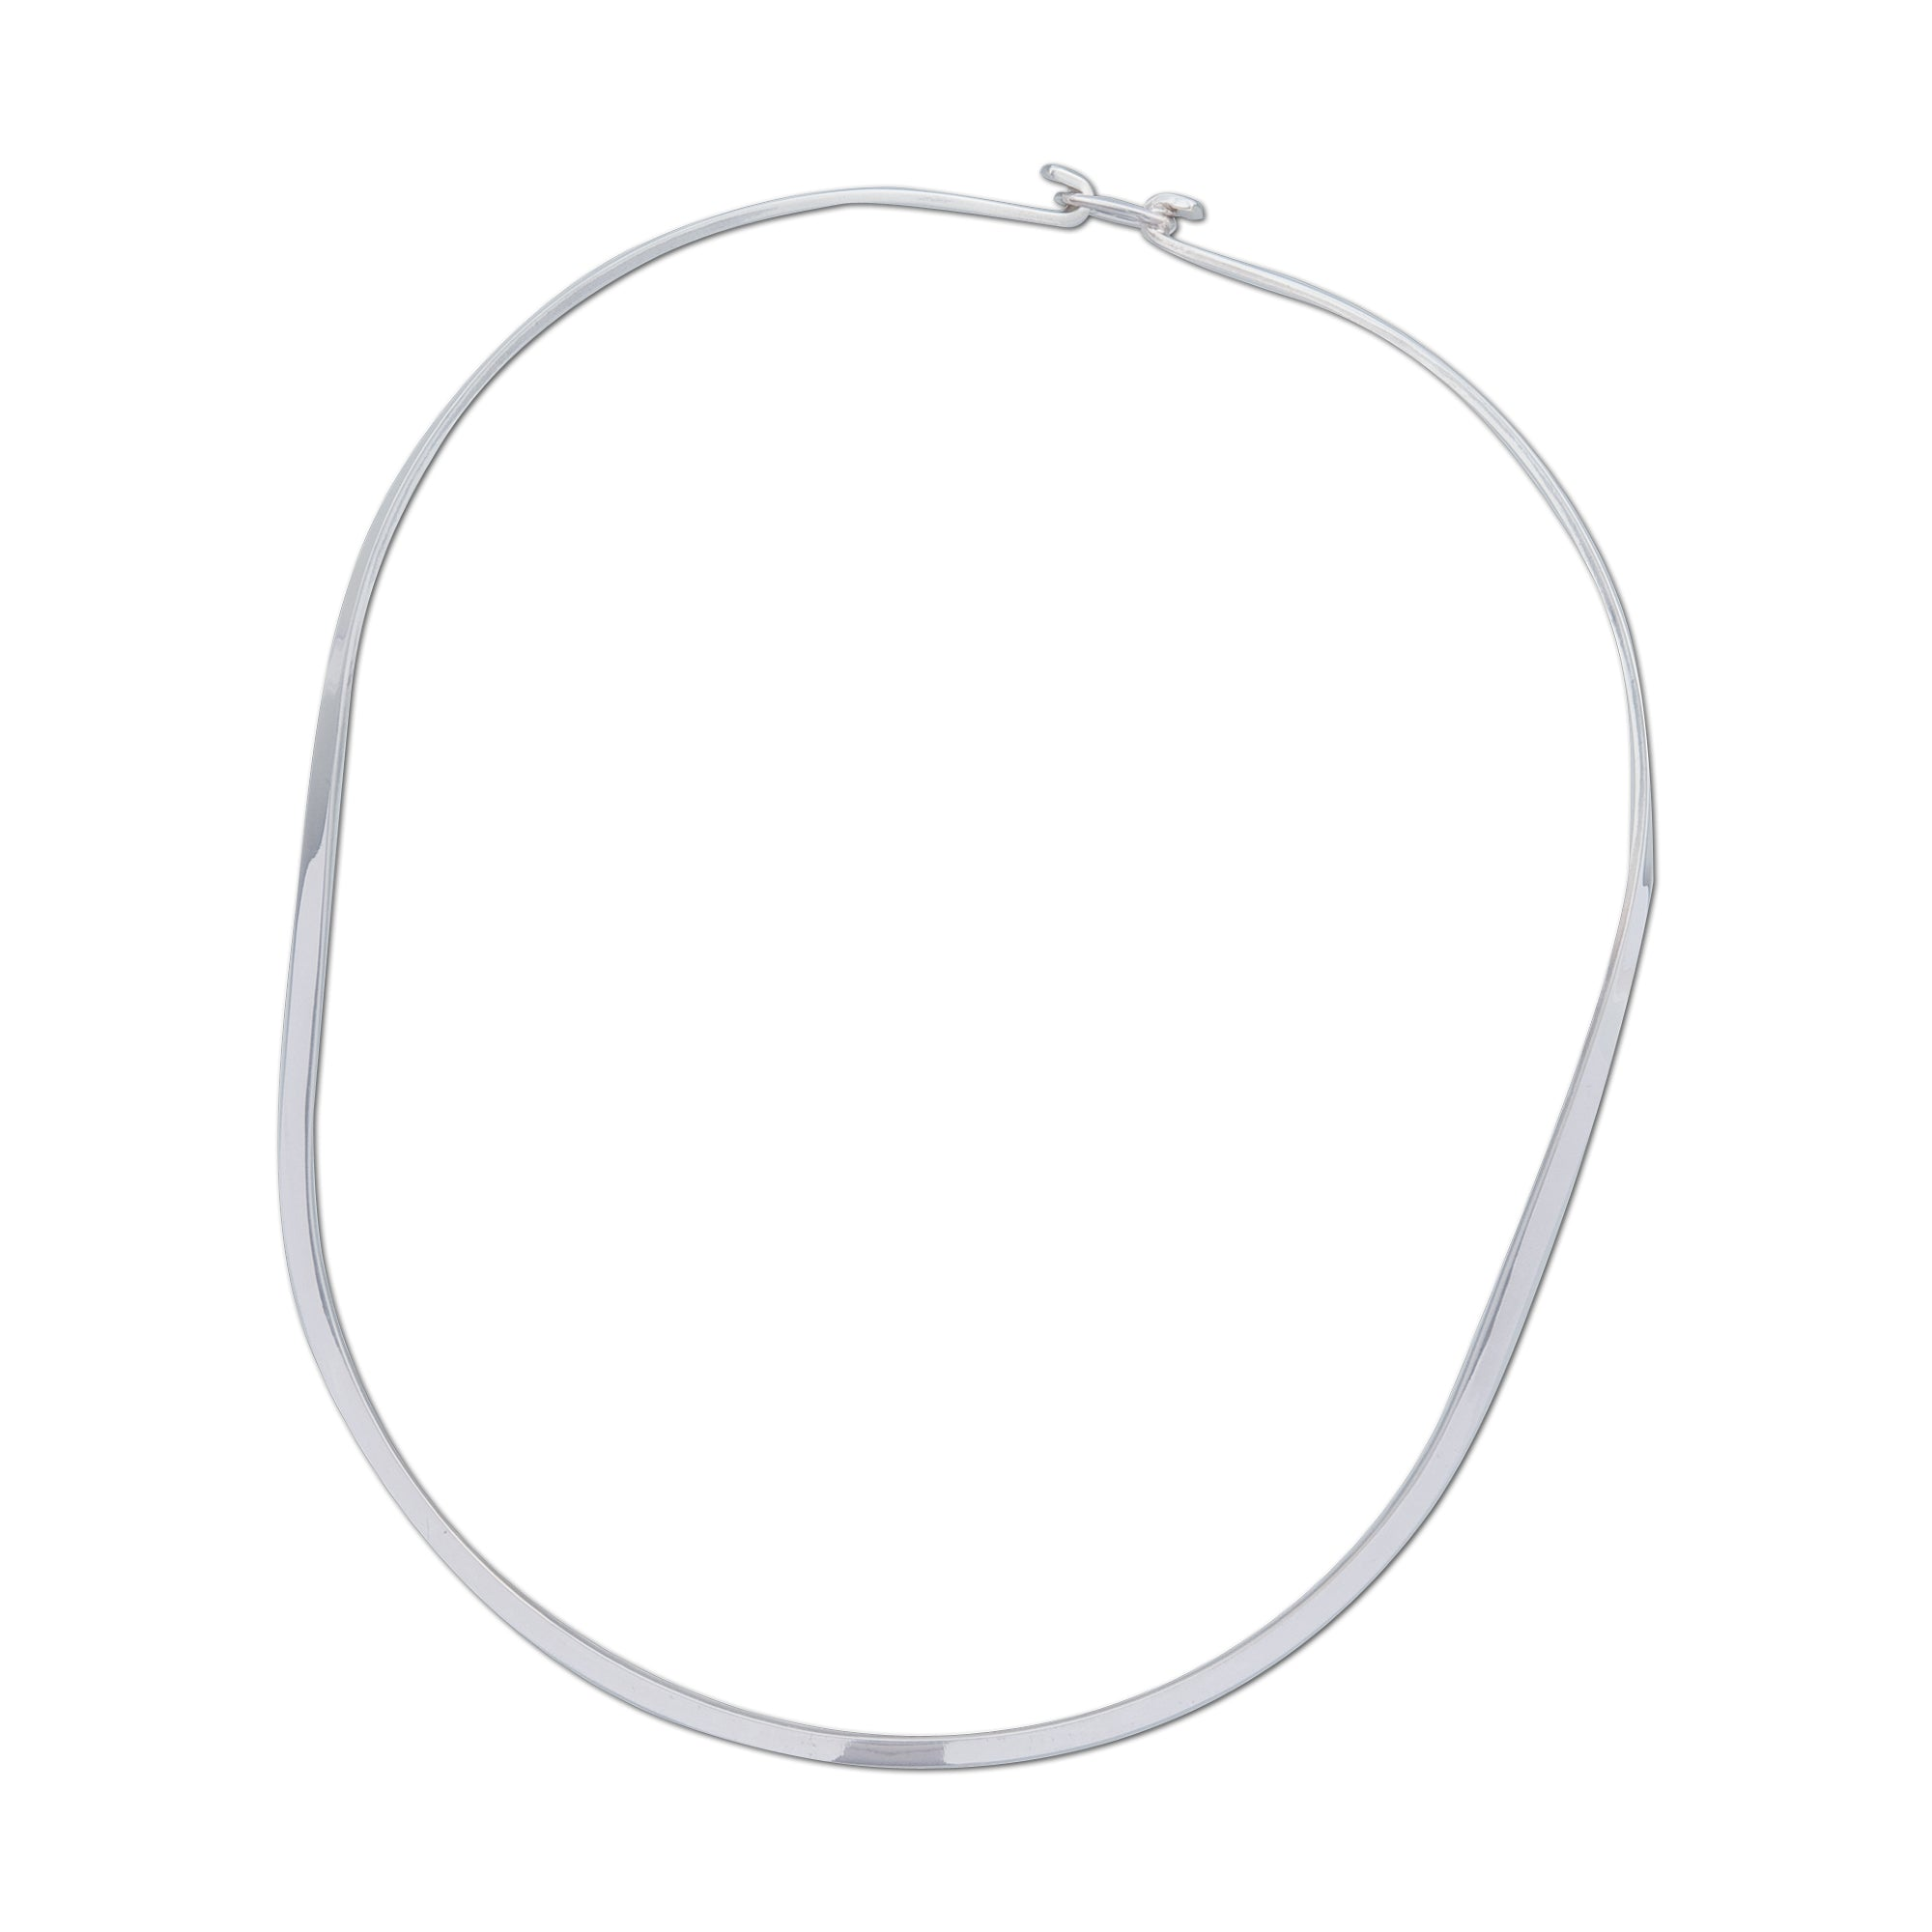 Sterling Silver Thin Oval Neckwire with Clasp | Charles Albert Jewelry